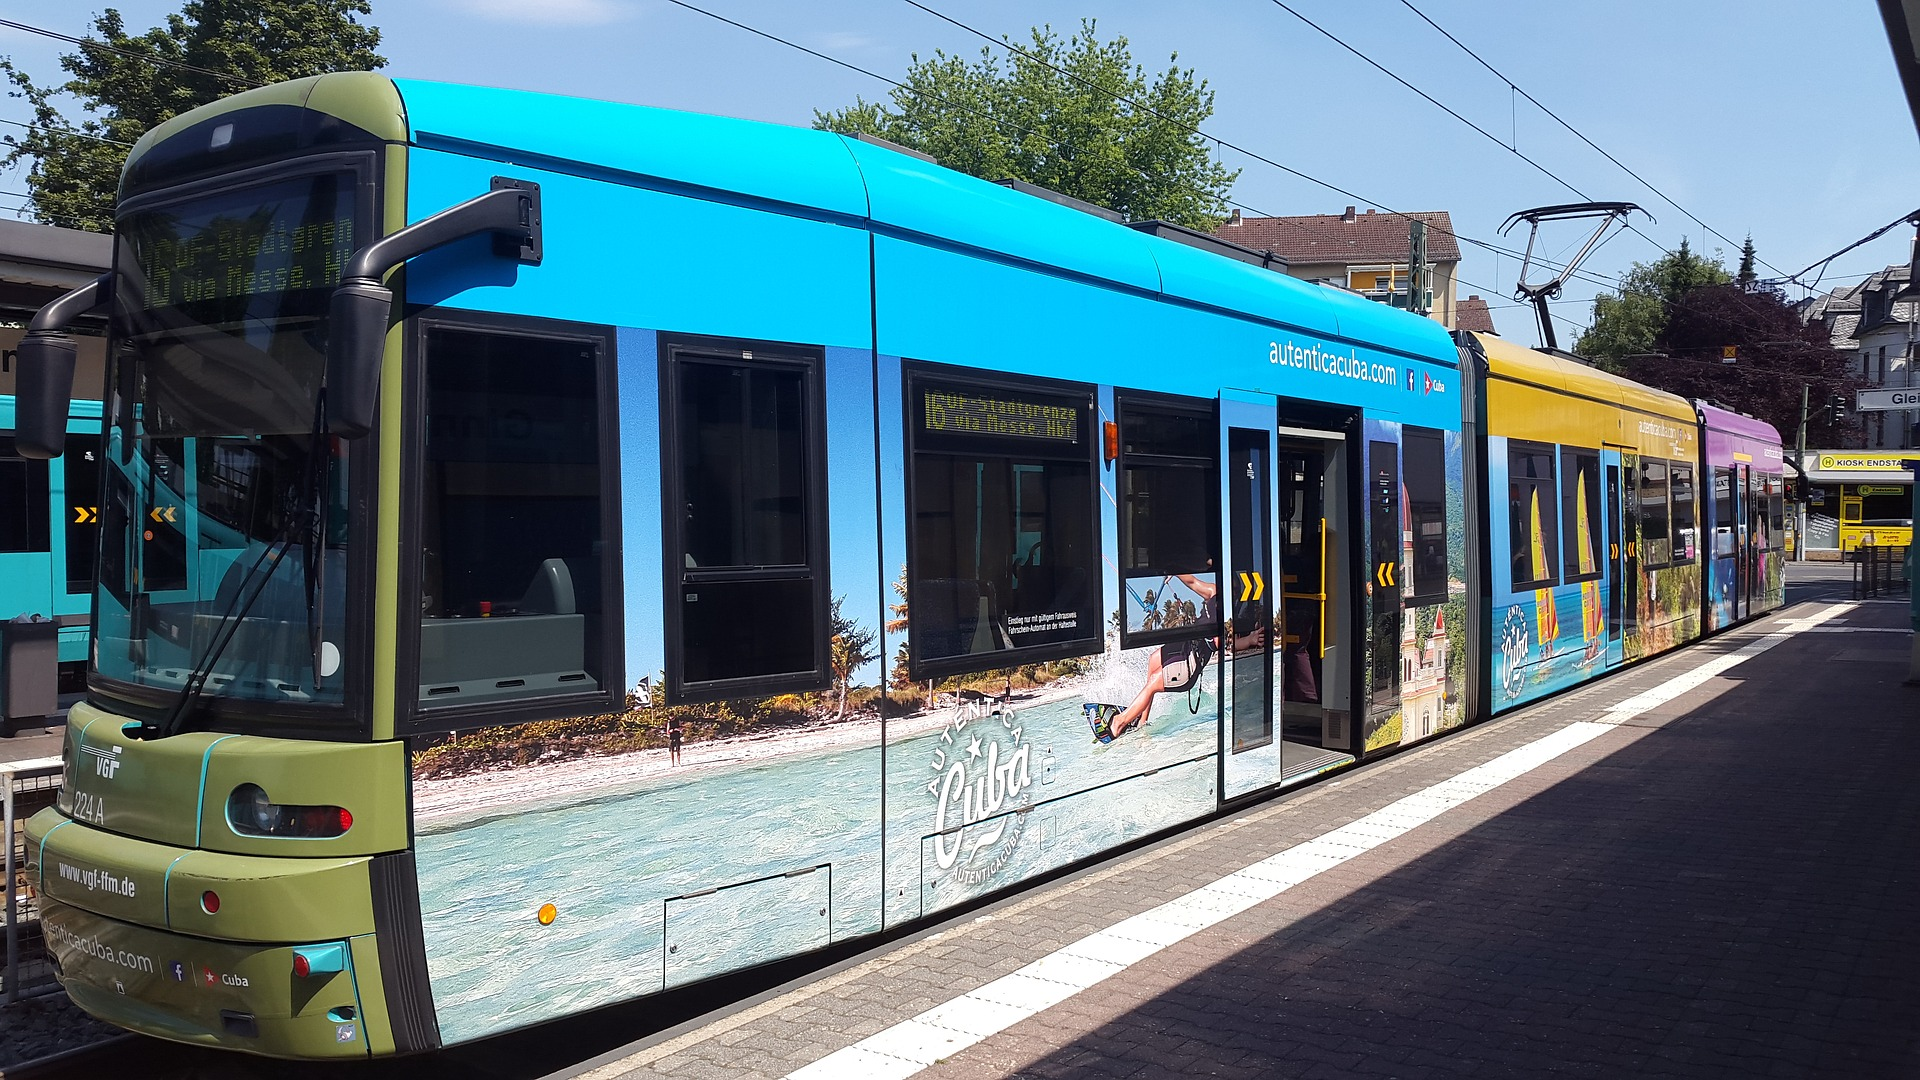 Tram in Frankfurt, Germany